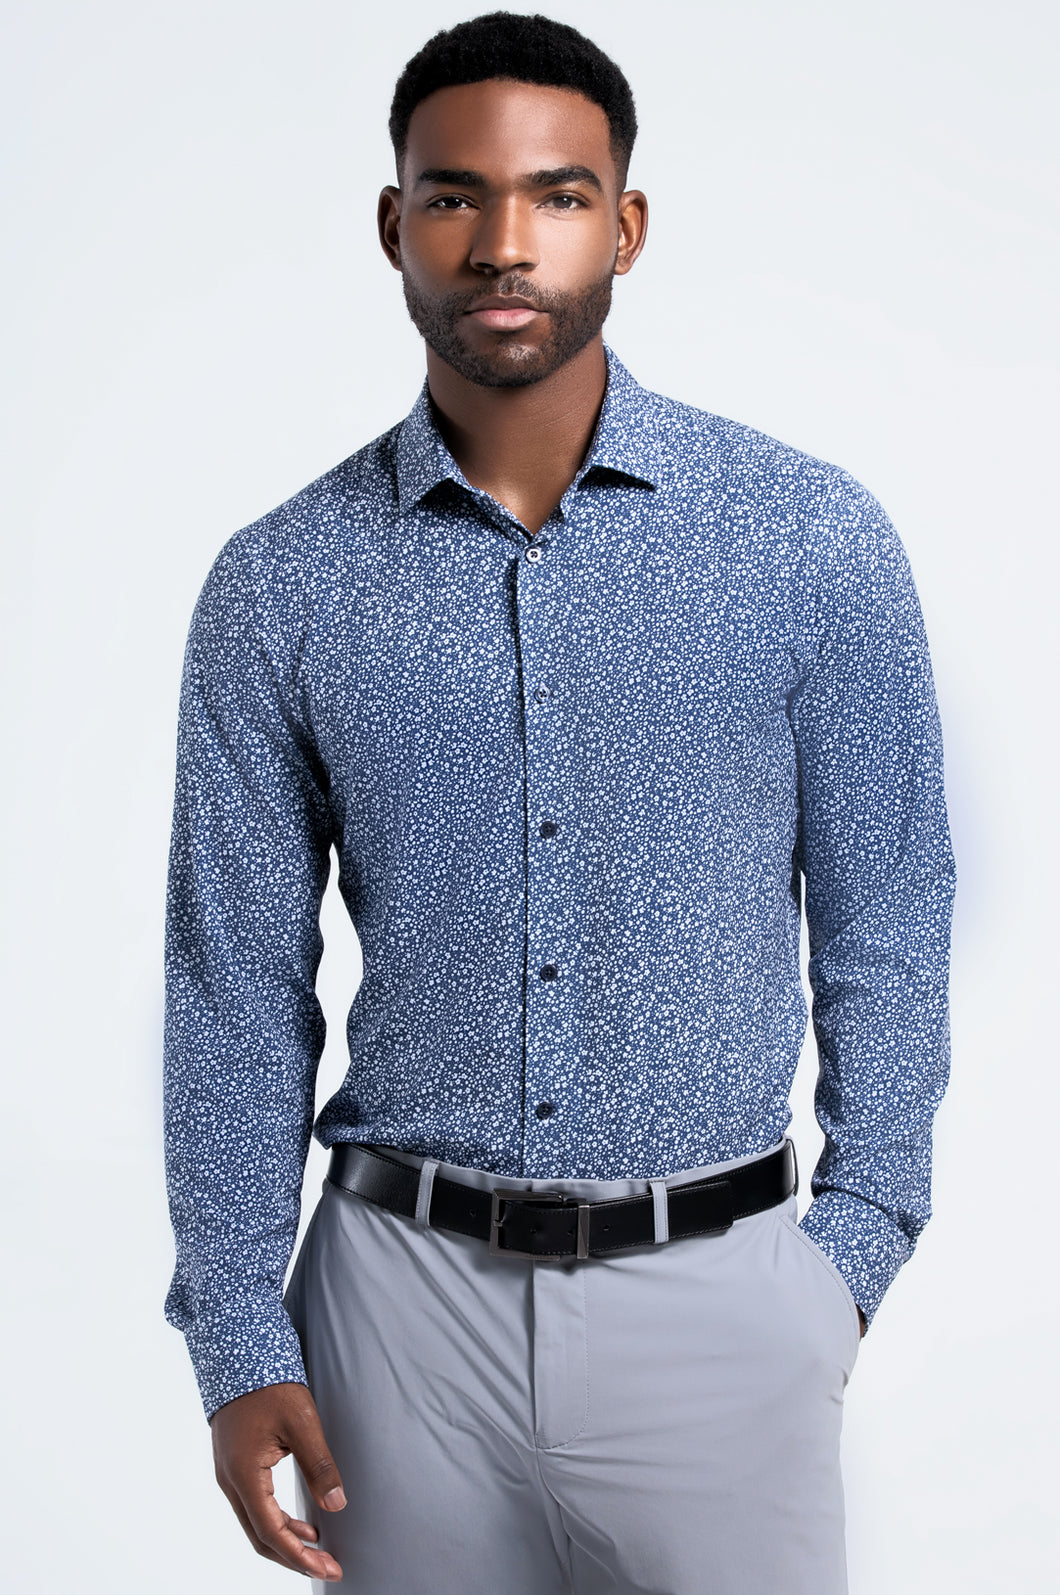 Men's Long Sleeve Dress Shirt - Navy Floral